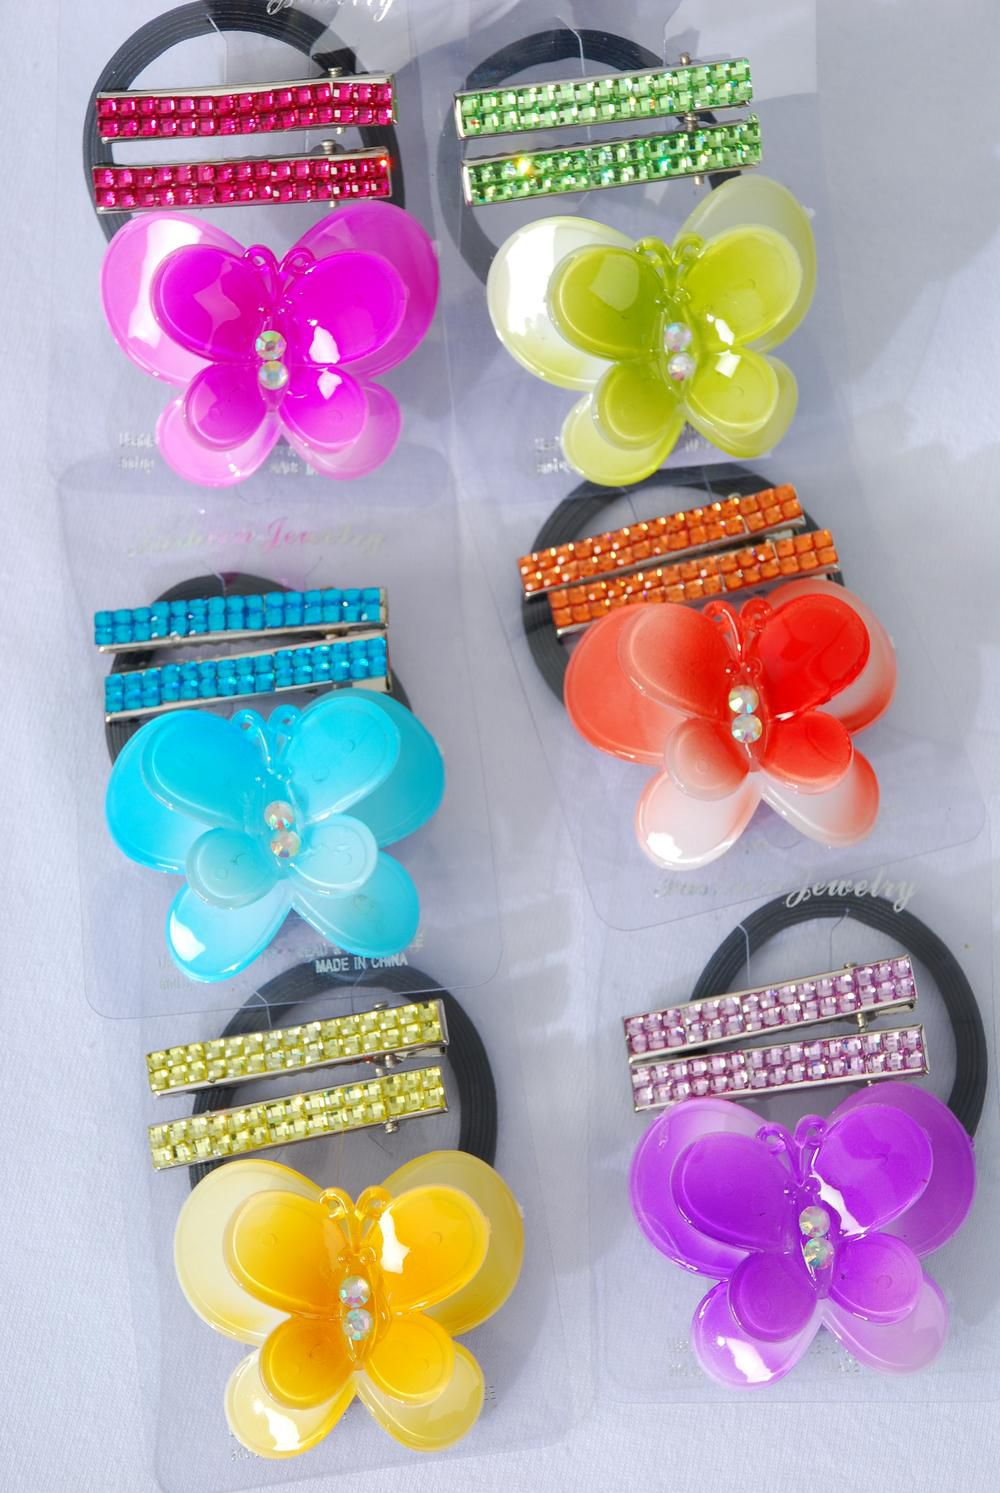 "Hair Ties Butterfly & Alligator Clip Infinity Stones/DZ Butterfly Size-2.5""x 2"",Alligator Clip,2 of each Color Asst,Individual Opp Bag & UPC Code,12 card=Dozen"